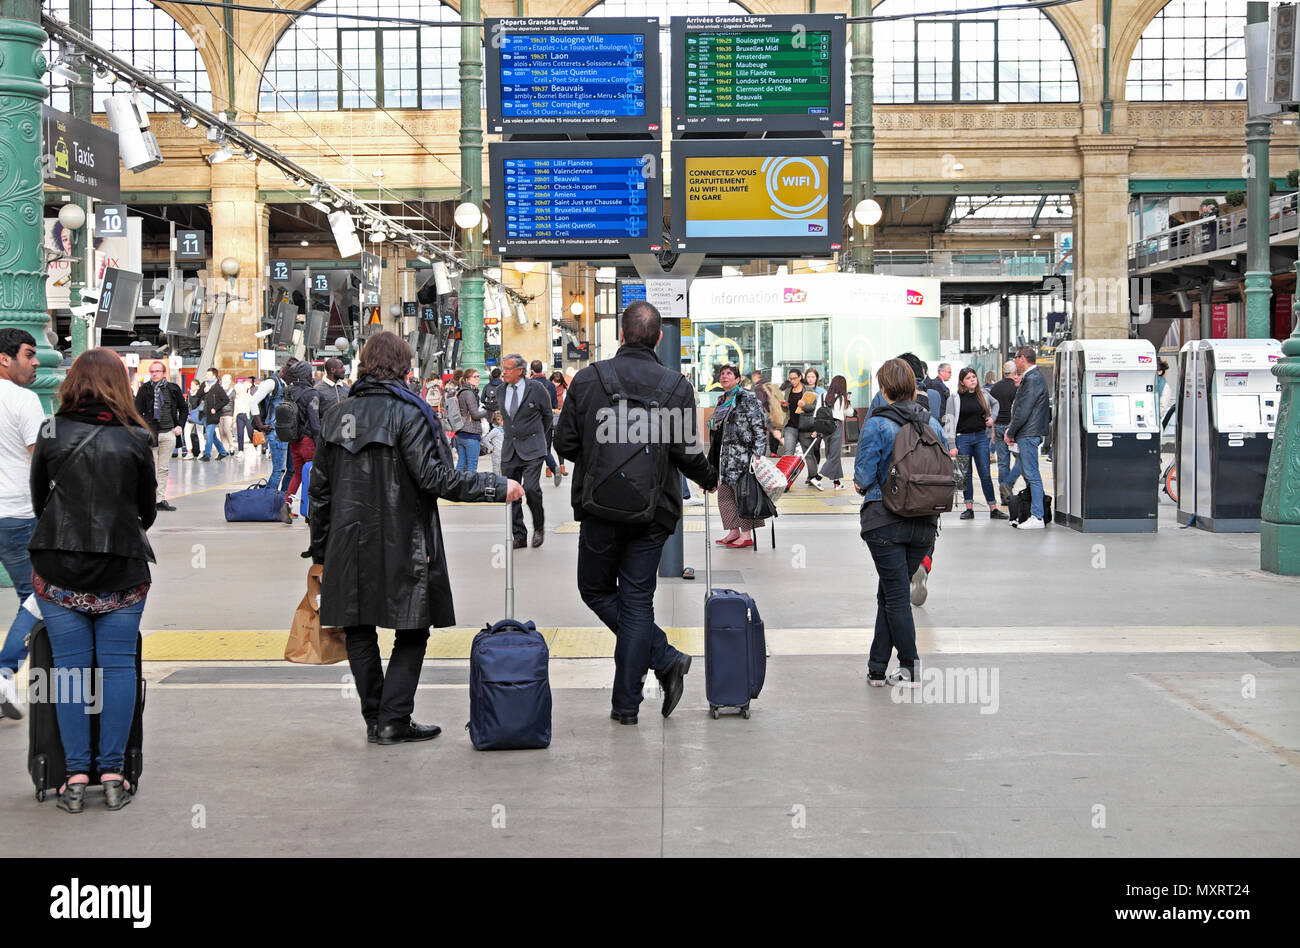 Interior view of passengers looking at departure and arrival screen on the concourse at the Gare du Nord in Paris France Europe  KATHY DEWITT - Stock Image